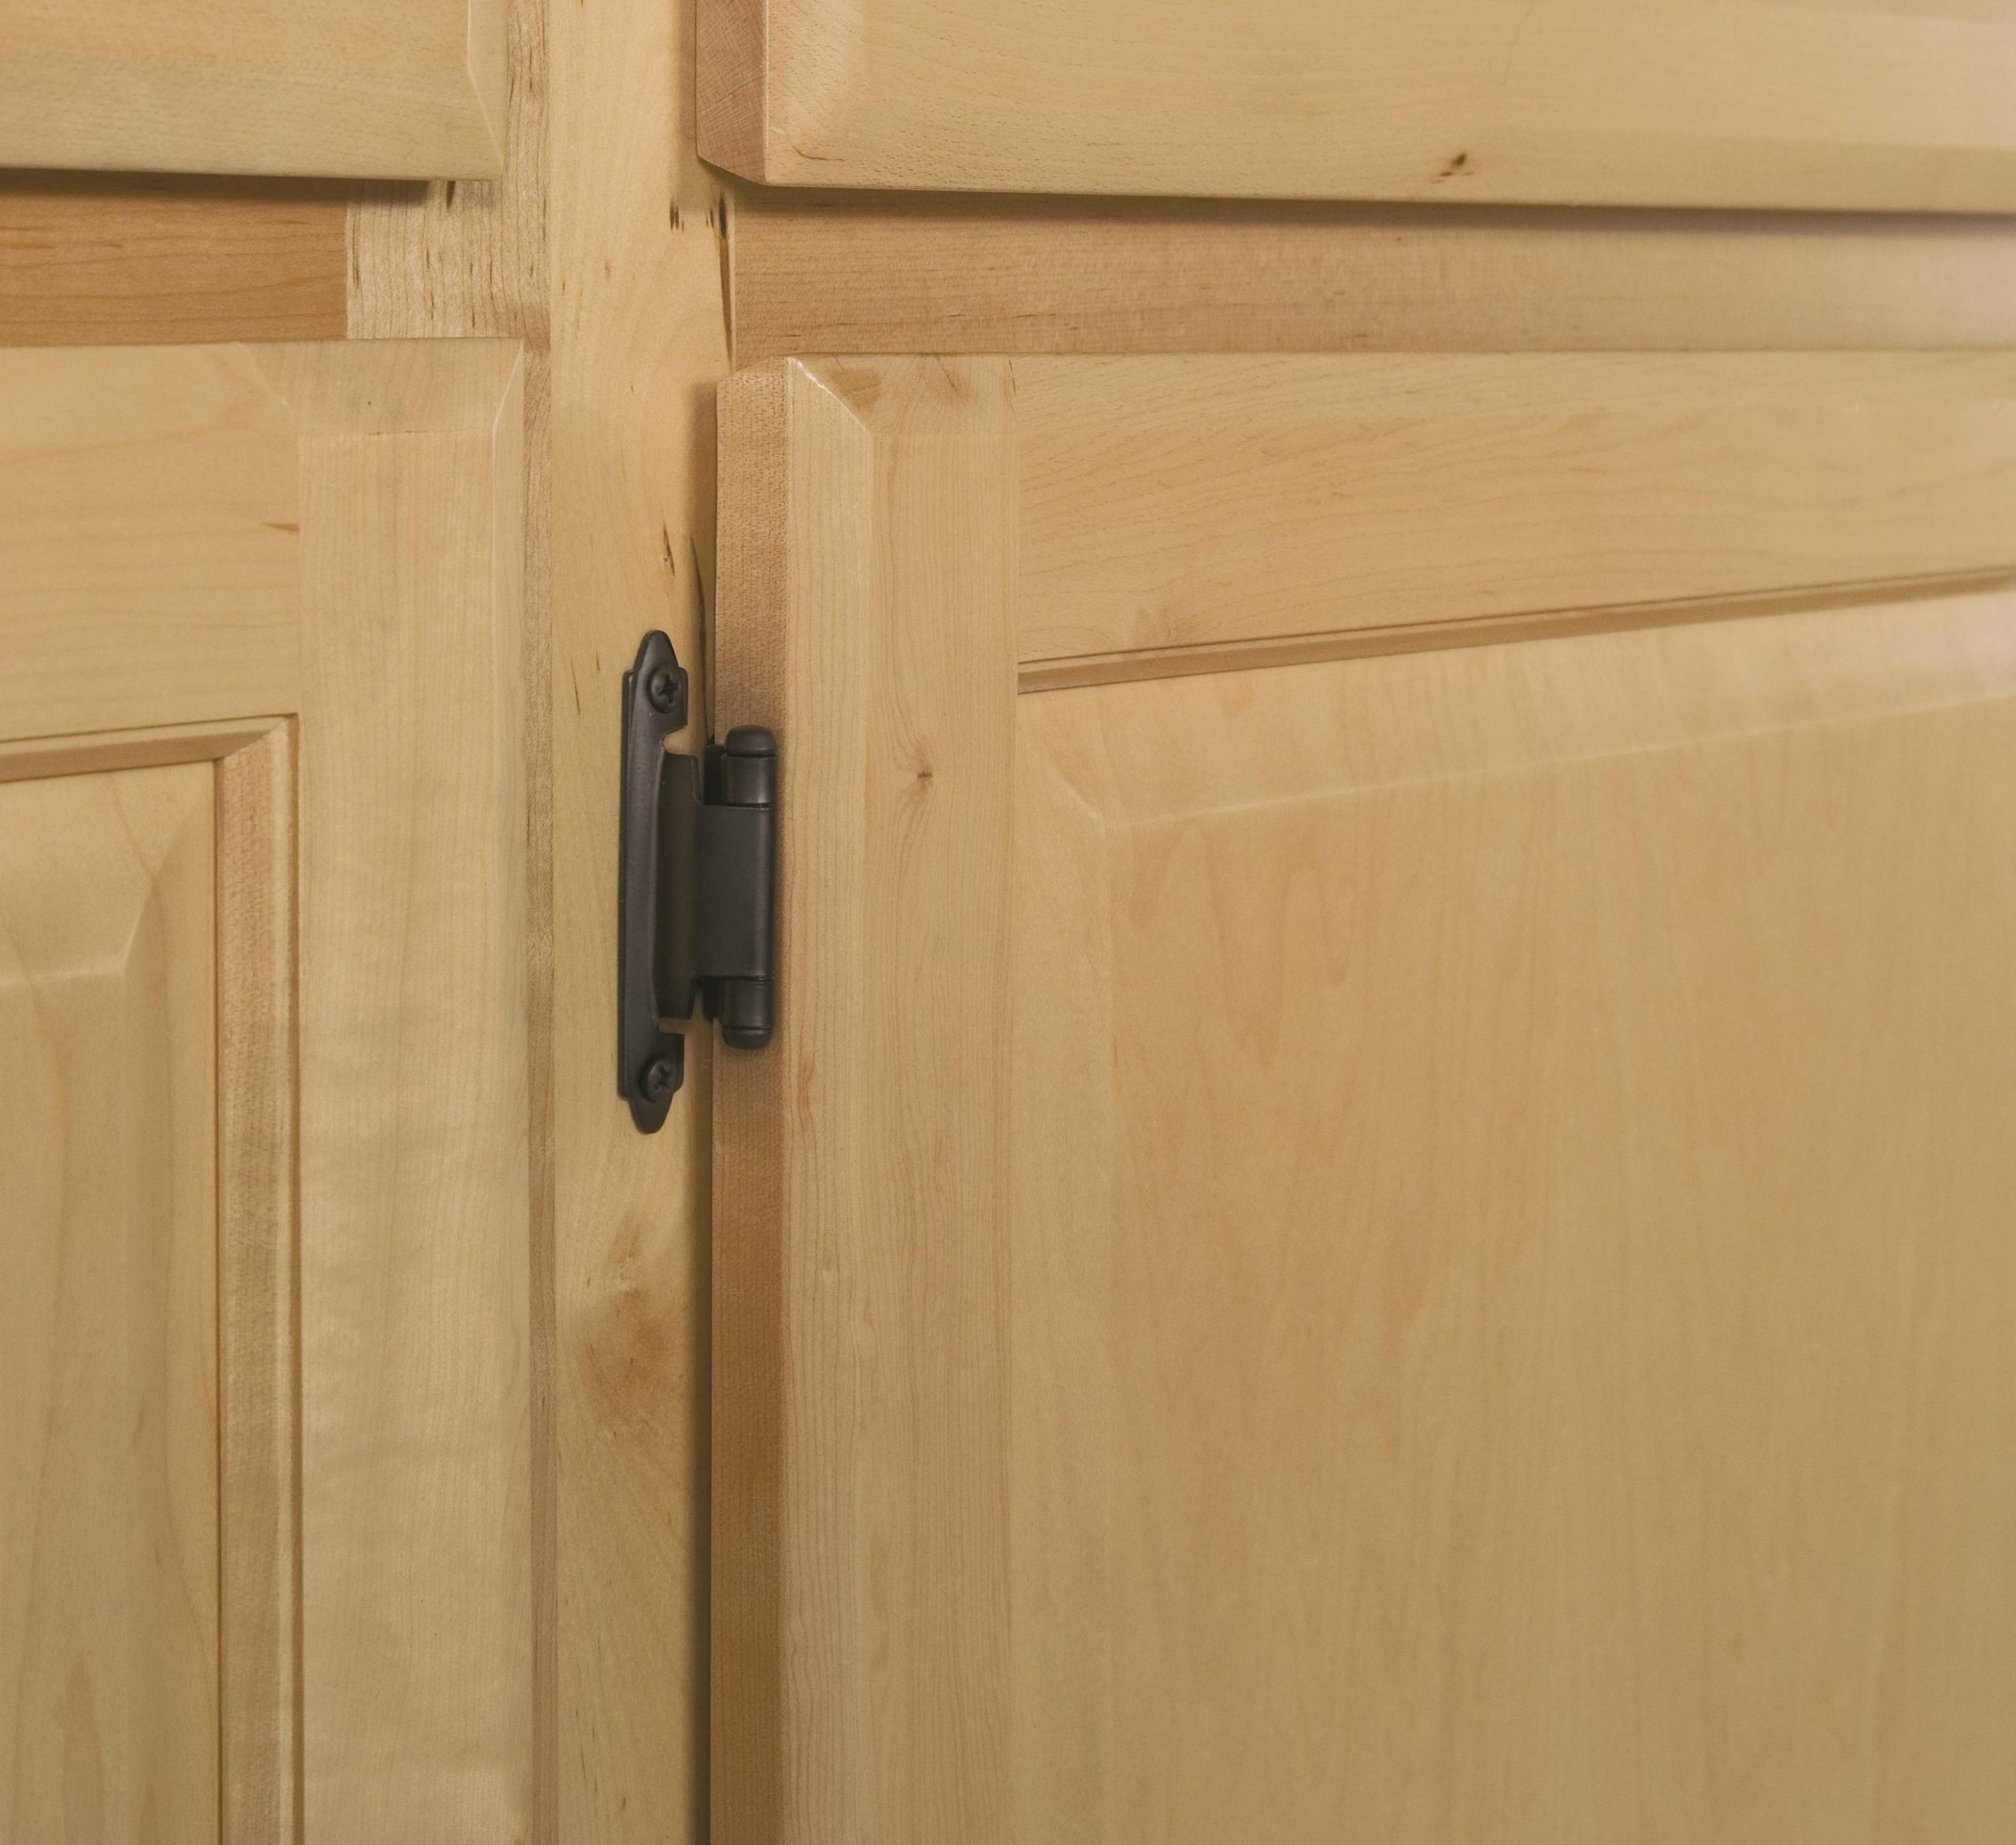 Replacing Outdated Cabinet Hinges? - The Hardware Hut - Kitchen Cabinet Door Hinge Replacement